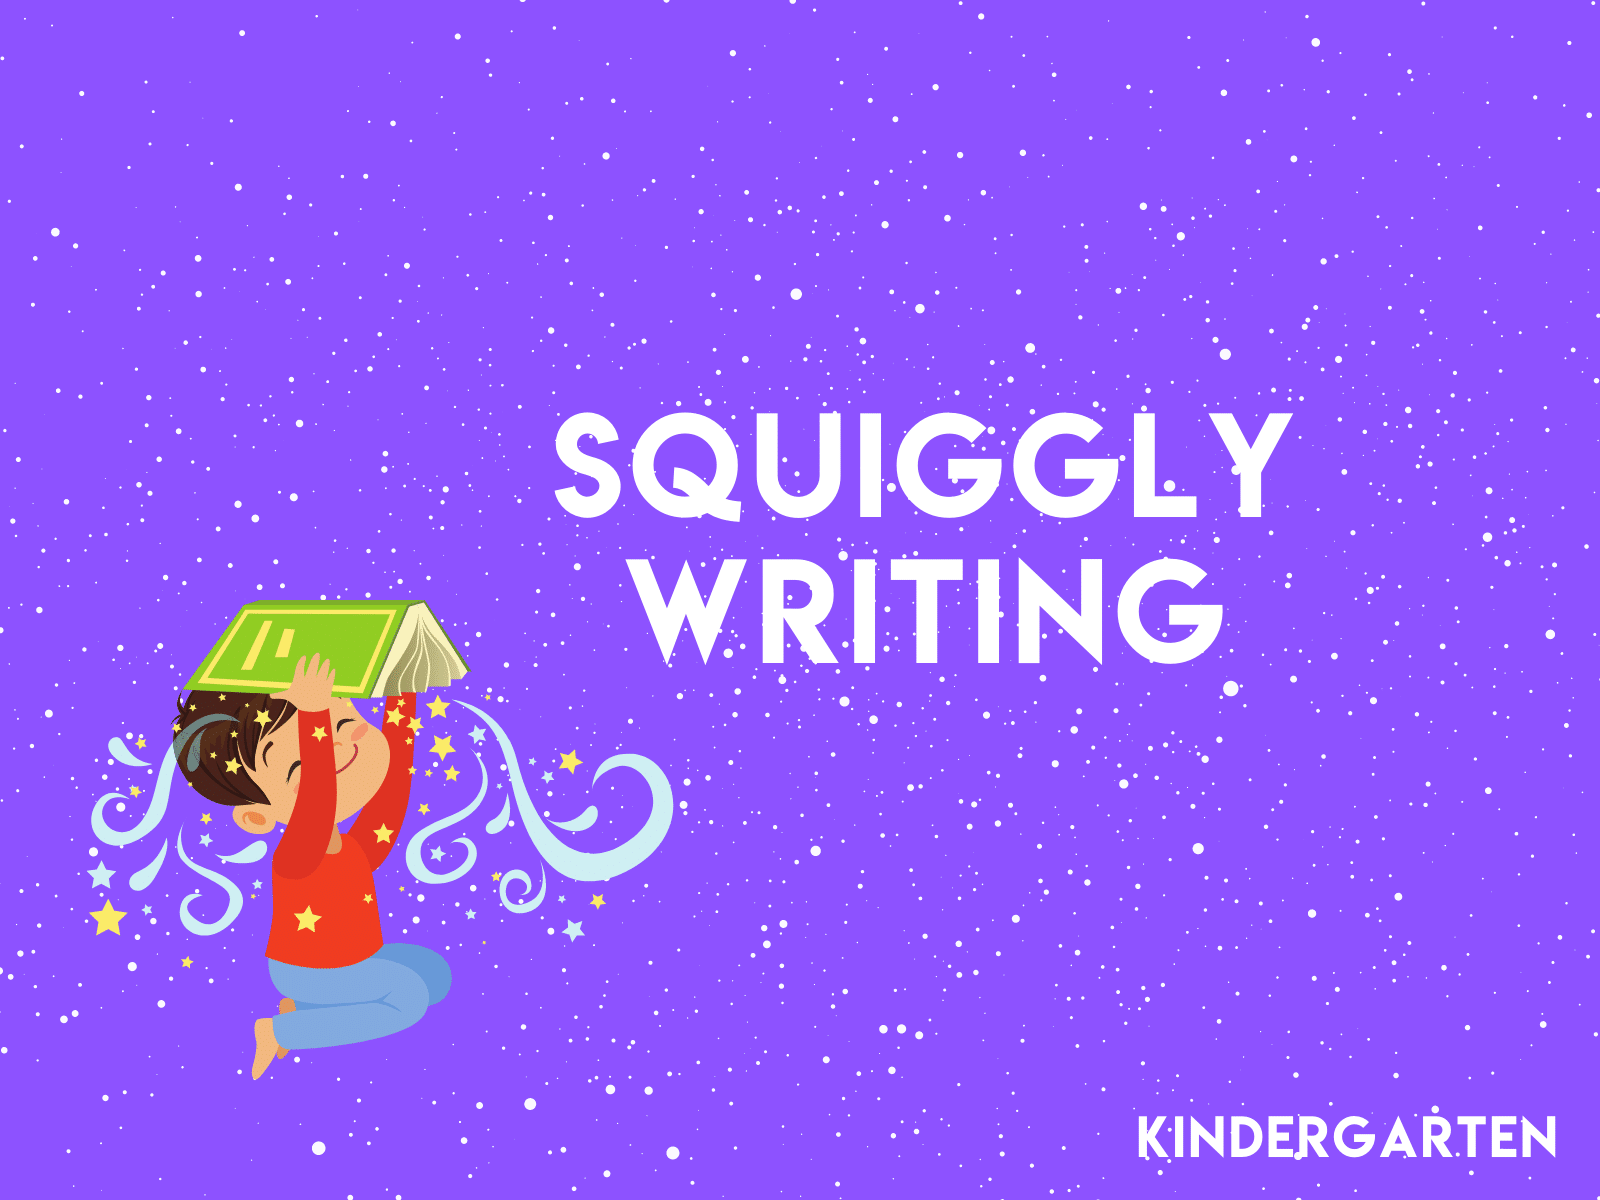 Help your kindergartener tap into their creativity with this squiggly line drawing and writing activity.